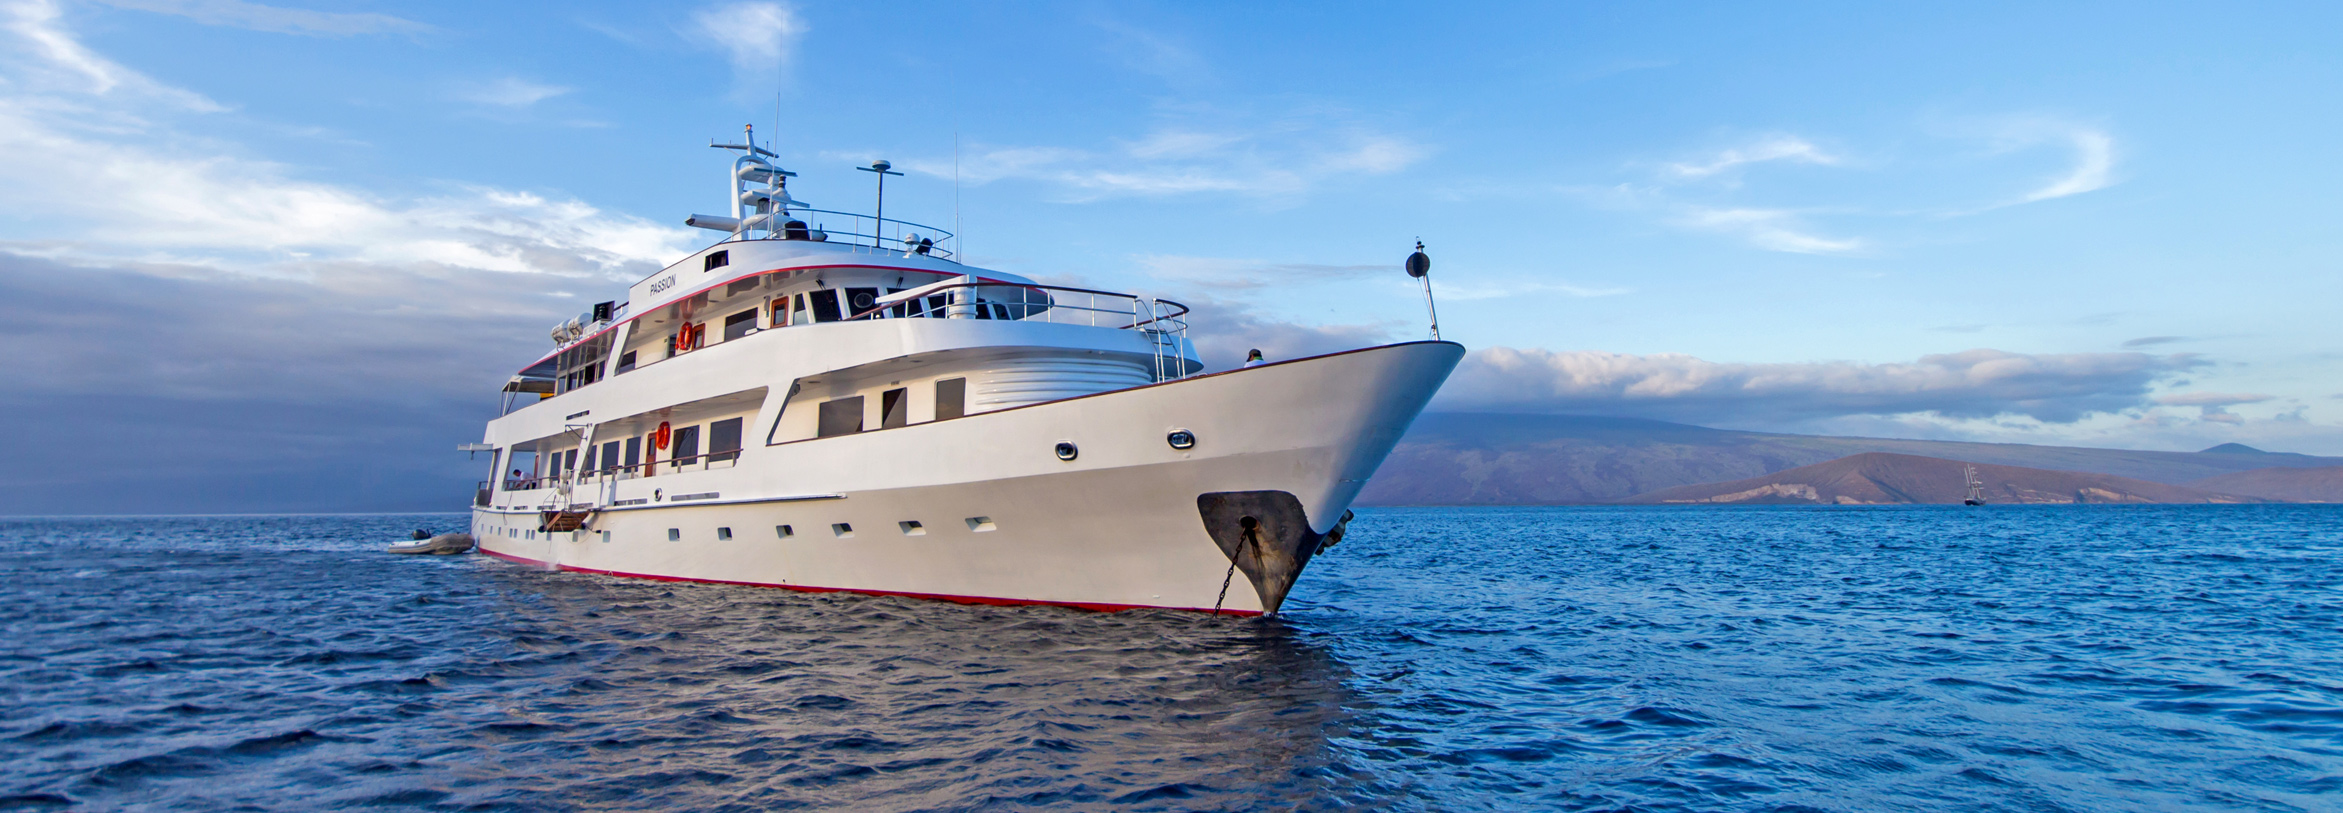 Galapagos Passion – Galapagos Islands Yacht – Ker & Downey